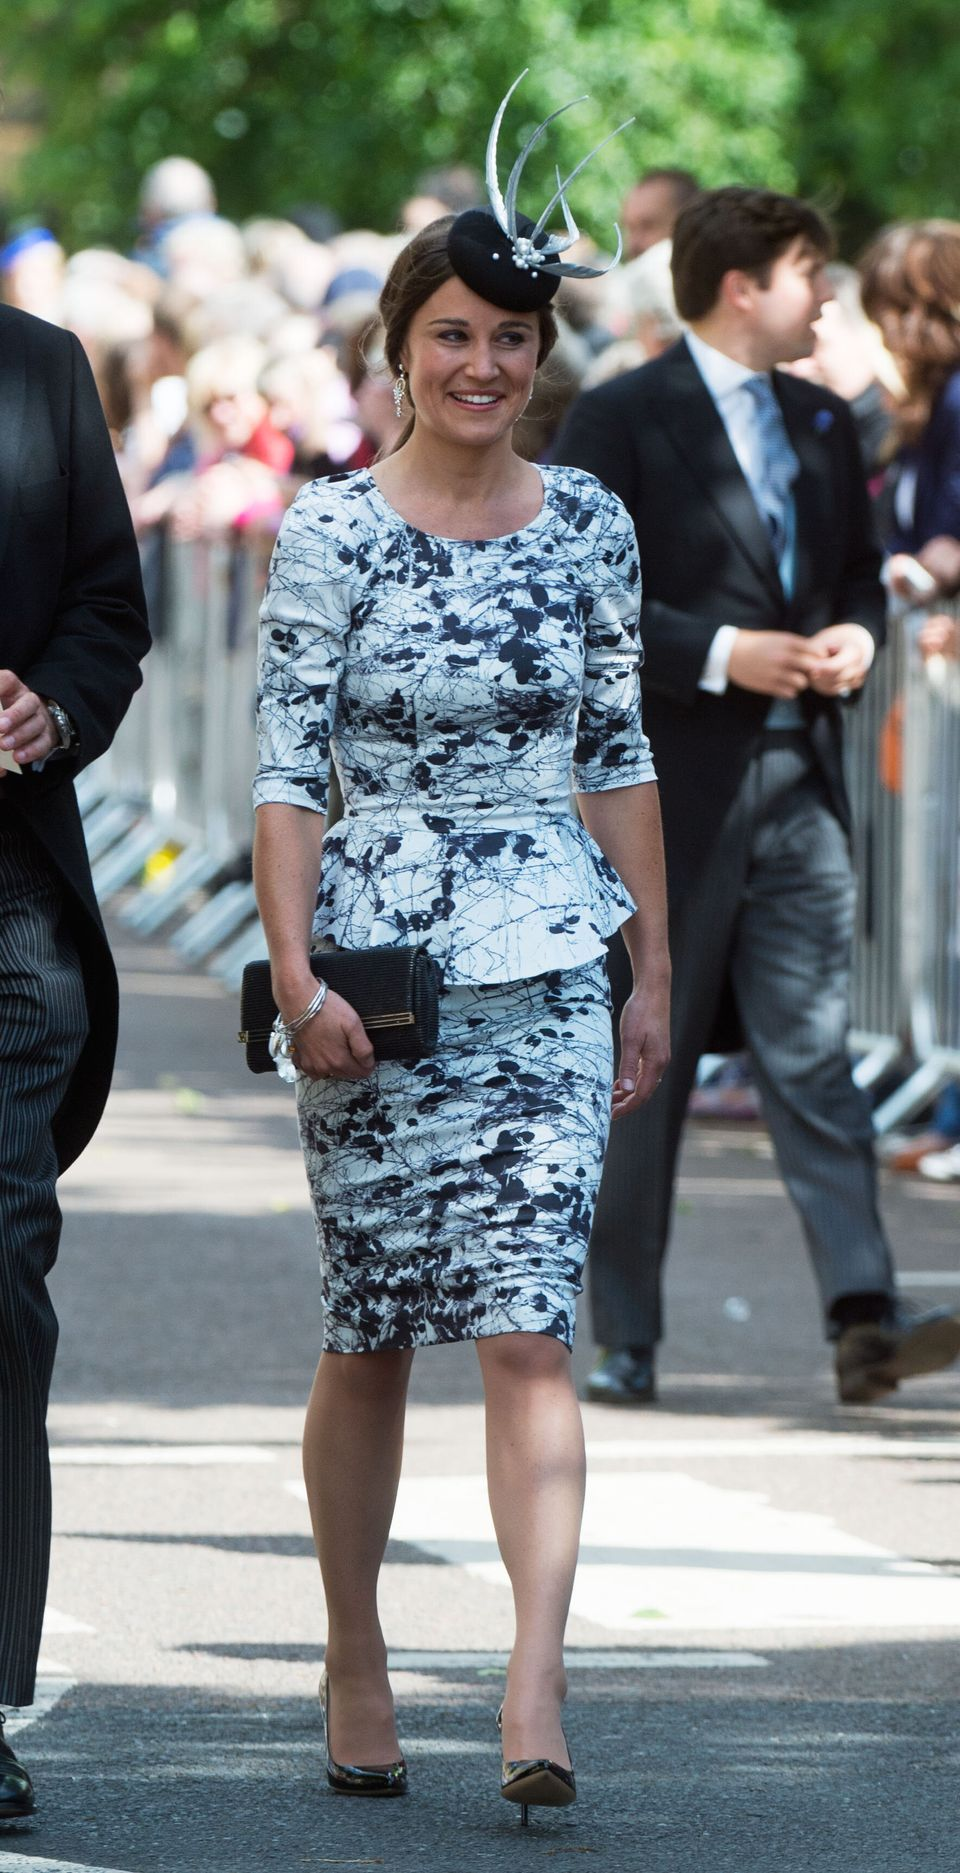 Pippa Middleton's Style Evolution Through The Years 42